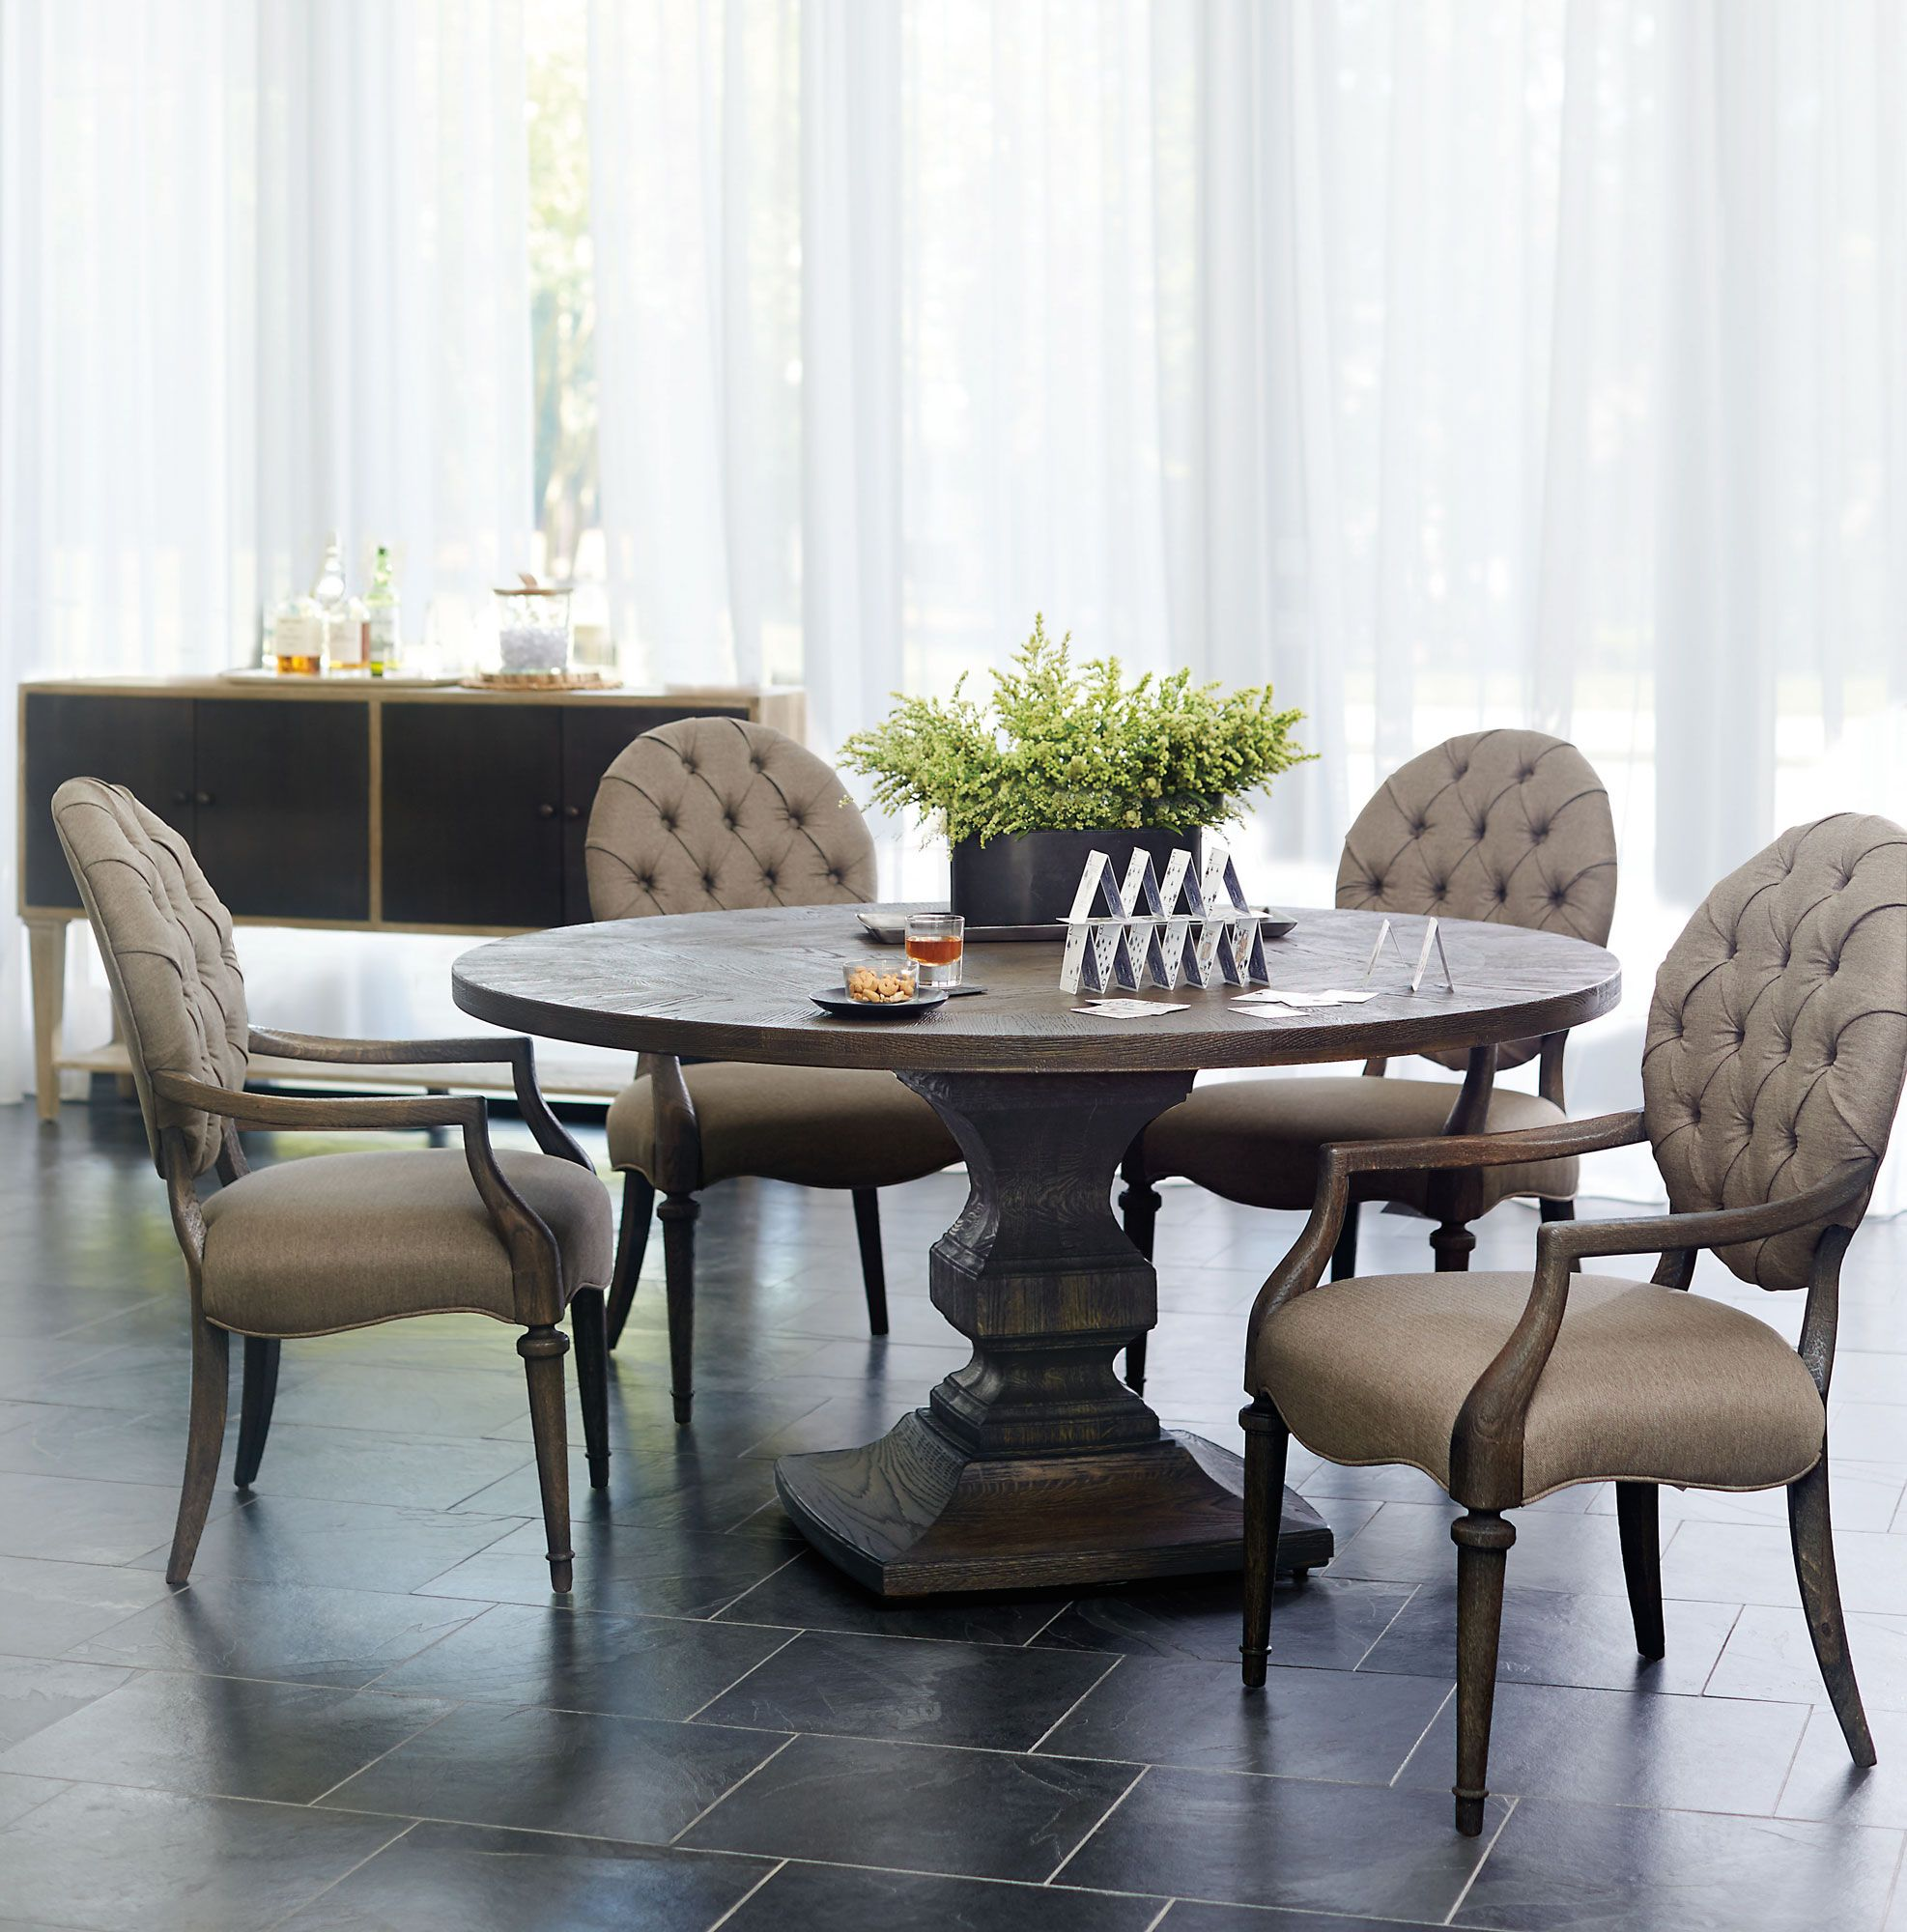 Bernhardt  Antiquarian Round Dining Table Arm Chairs And Prepossessing Bernhardt Dining Room Set Design Inspiration